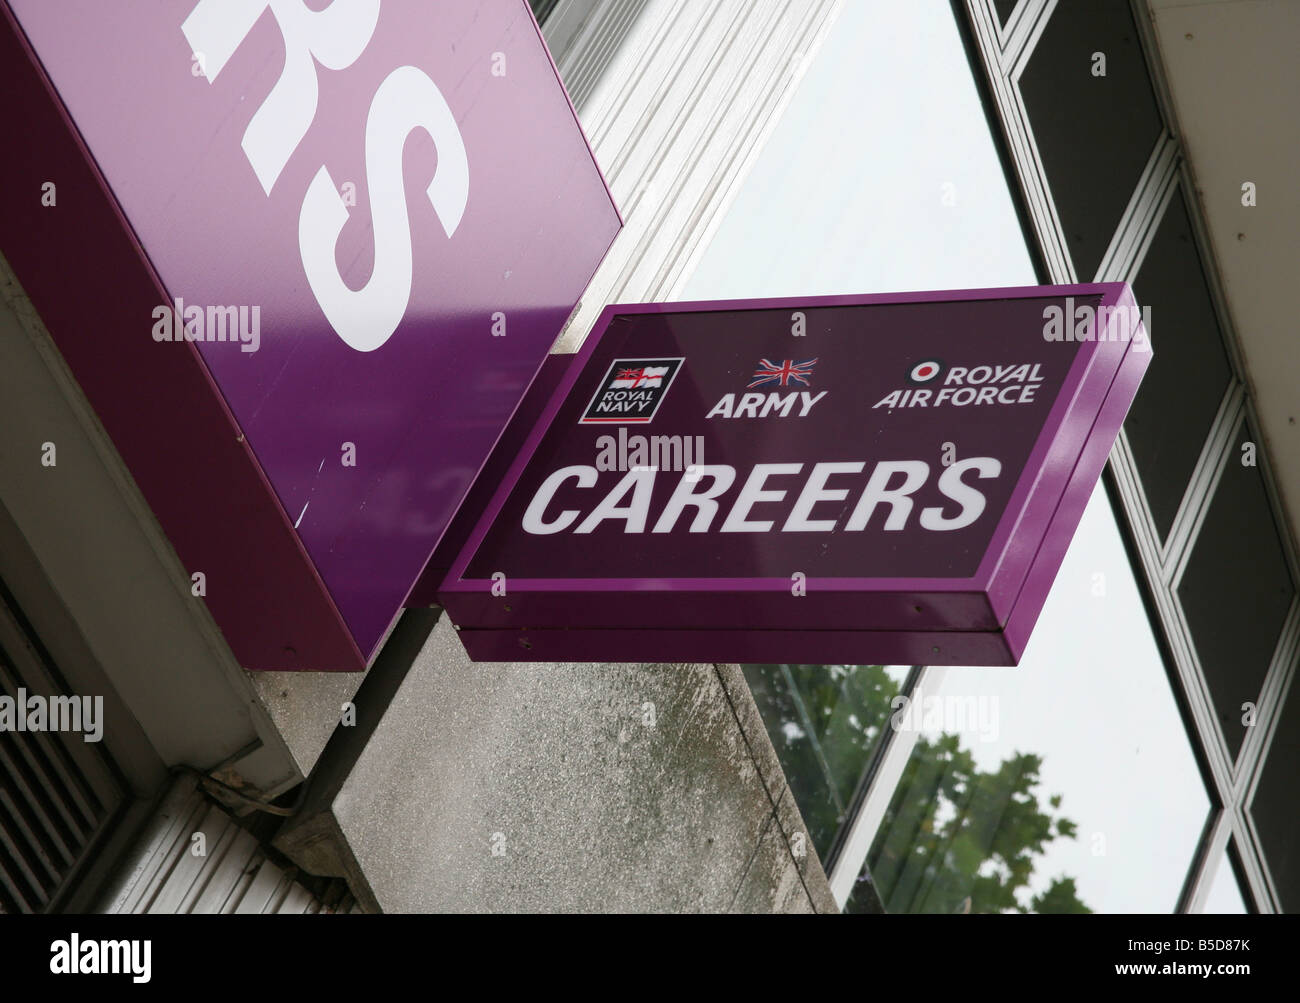 Armed forces careers office sign in Peterborough - Stock Image